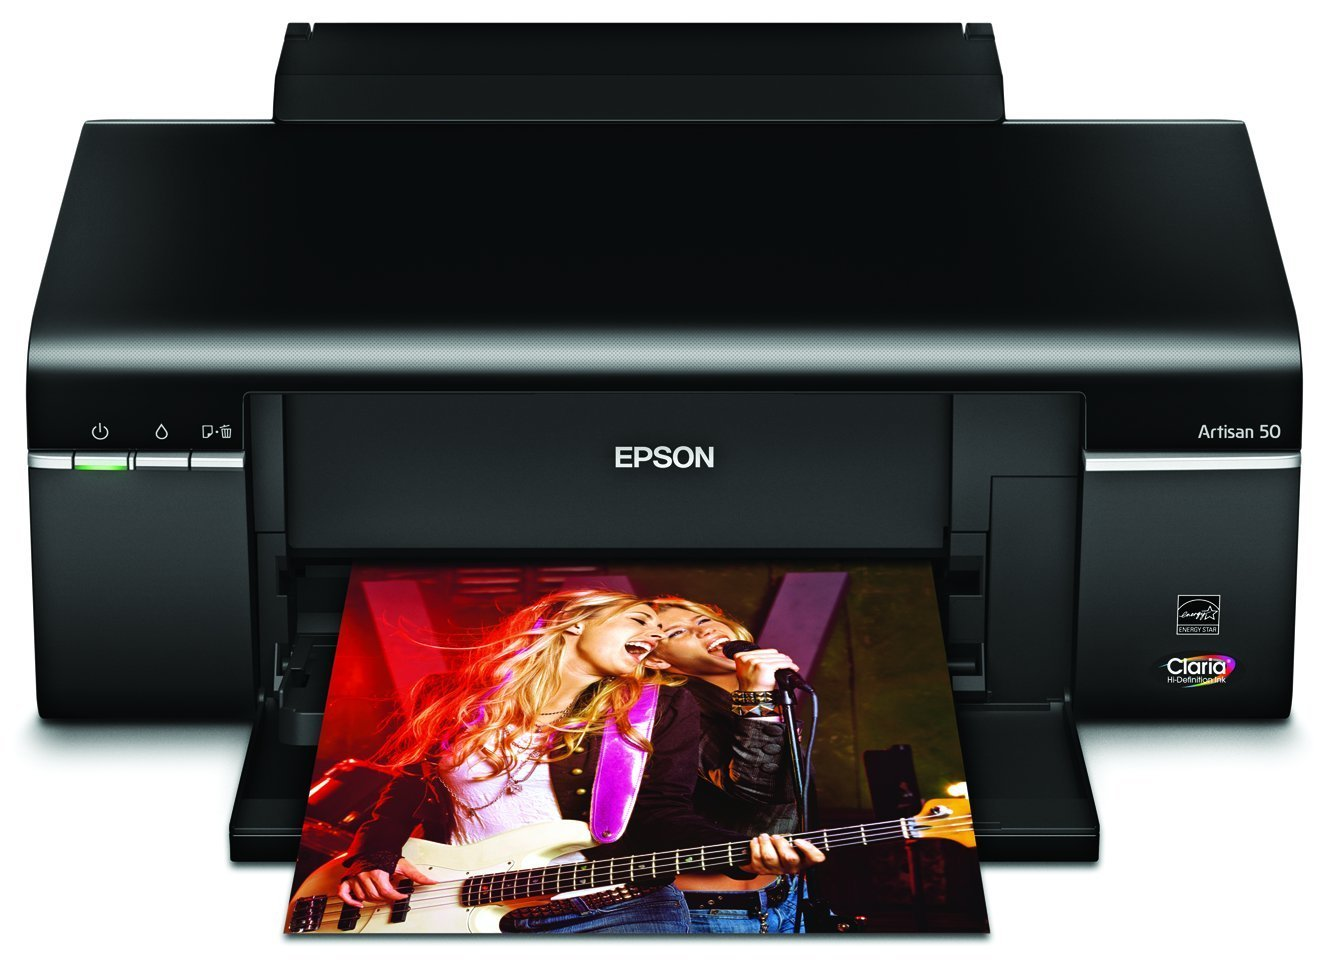 Epson stylus photo t50 driver download EPSON STYLUS PHOTO T50 QUICK MANUAL Pdf Download